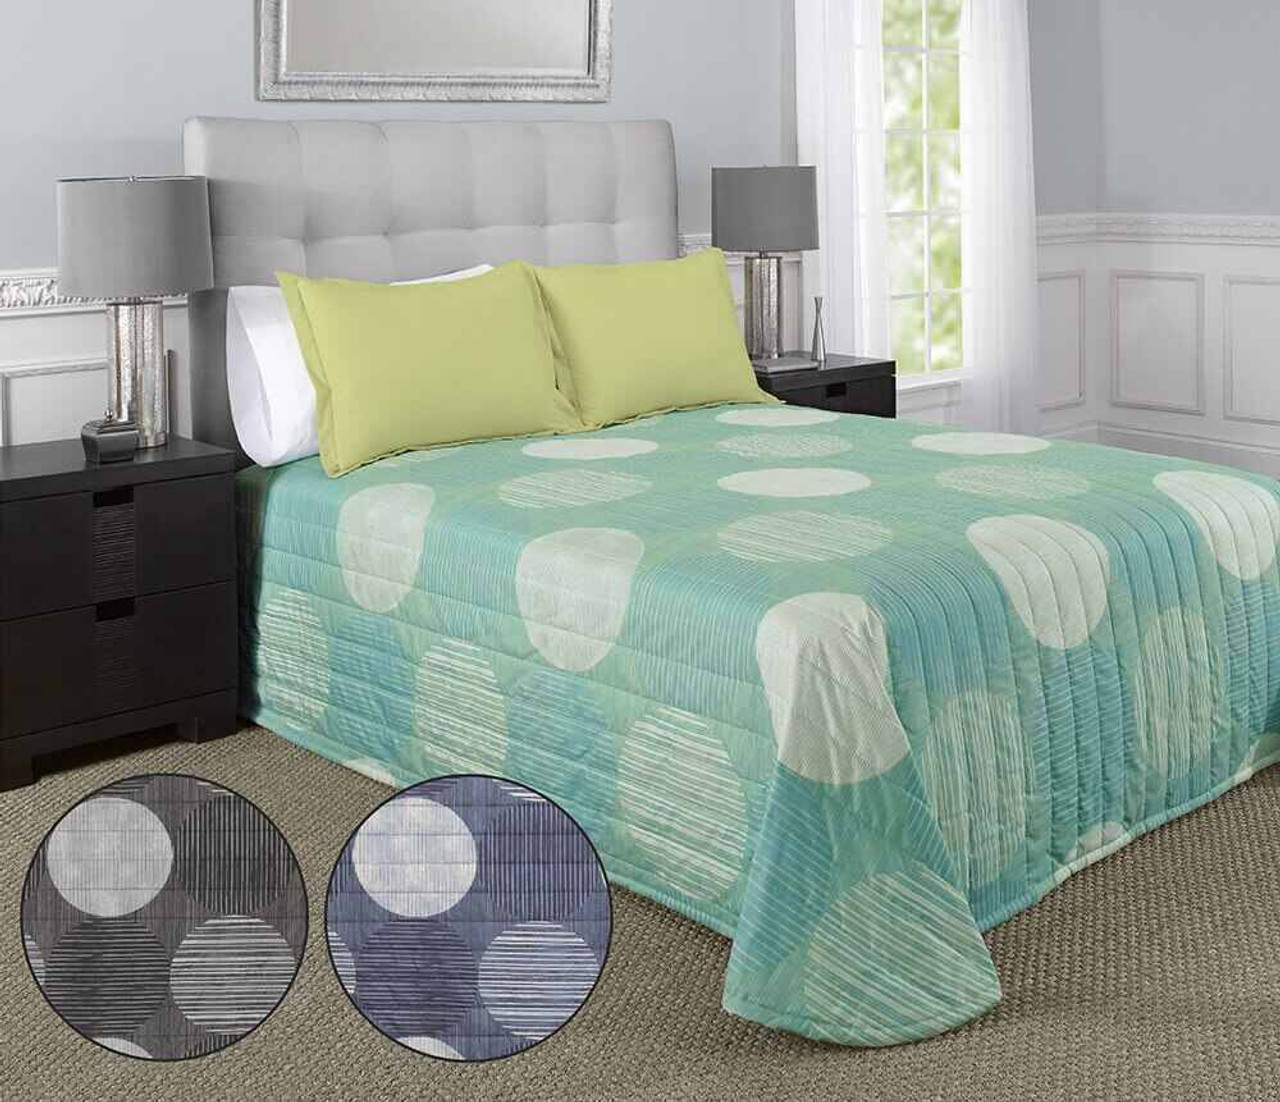 WestPoint/Martex Martex Rx or Comforter or Circles and Stripes or Black